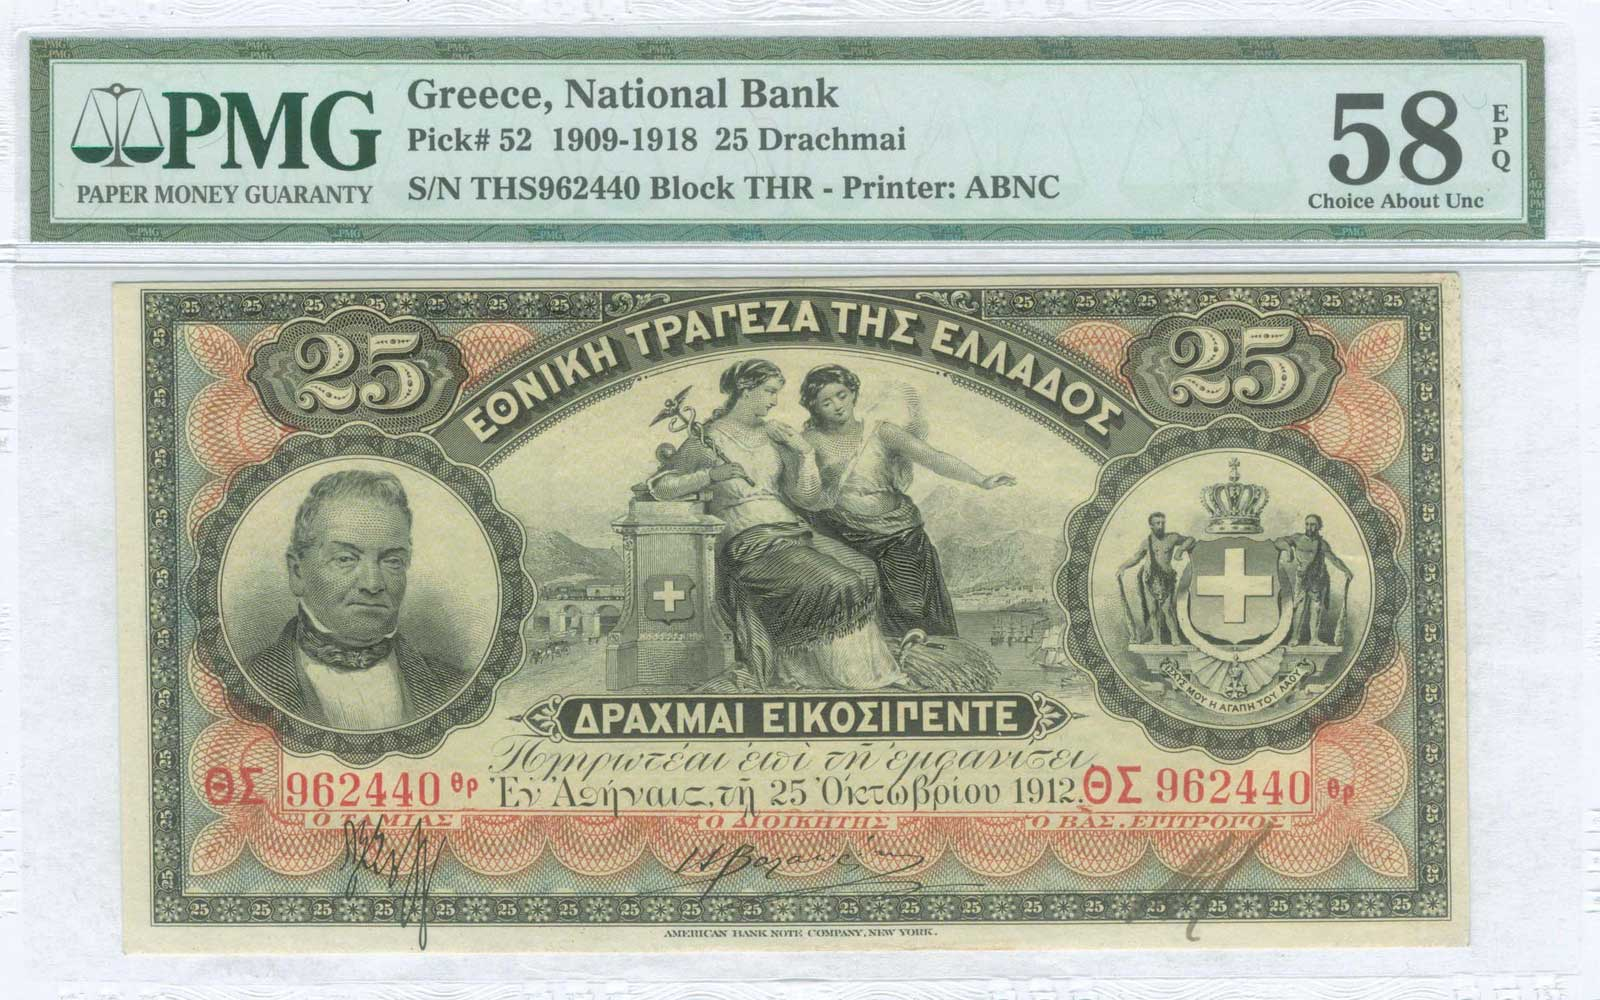 Lot 9280 - GREECE-  PAPER MONEY - BANKNOTES National Bank of Greece -  A. Karamitsos Public & LIVE Bid Auction 606 Coins, Medals & Banknotes